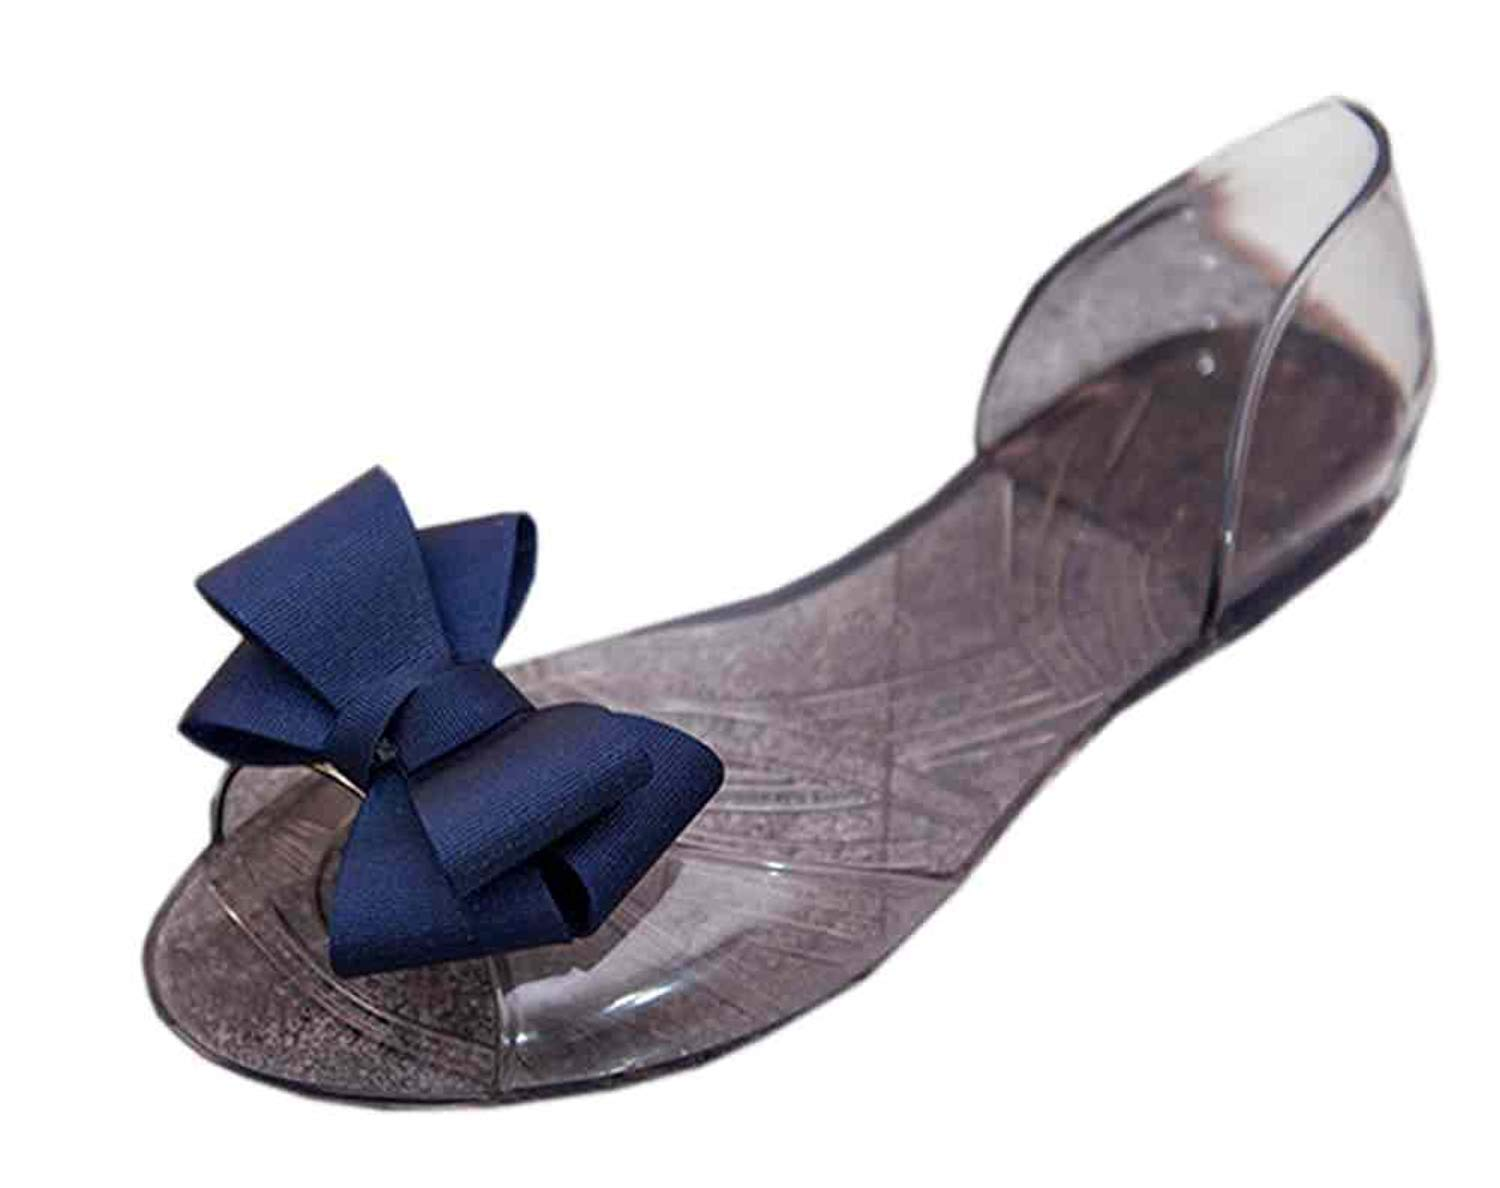 954cc0f2a12a Get Quotations · Vokamara Women Ribbon Bow Jelly D Orsay Flats Slip On  Ballet Shoes